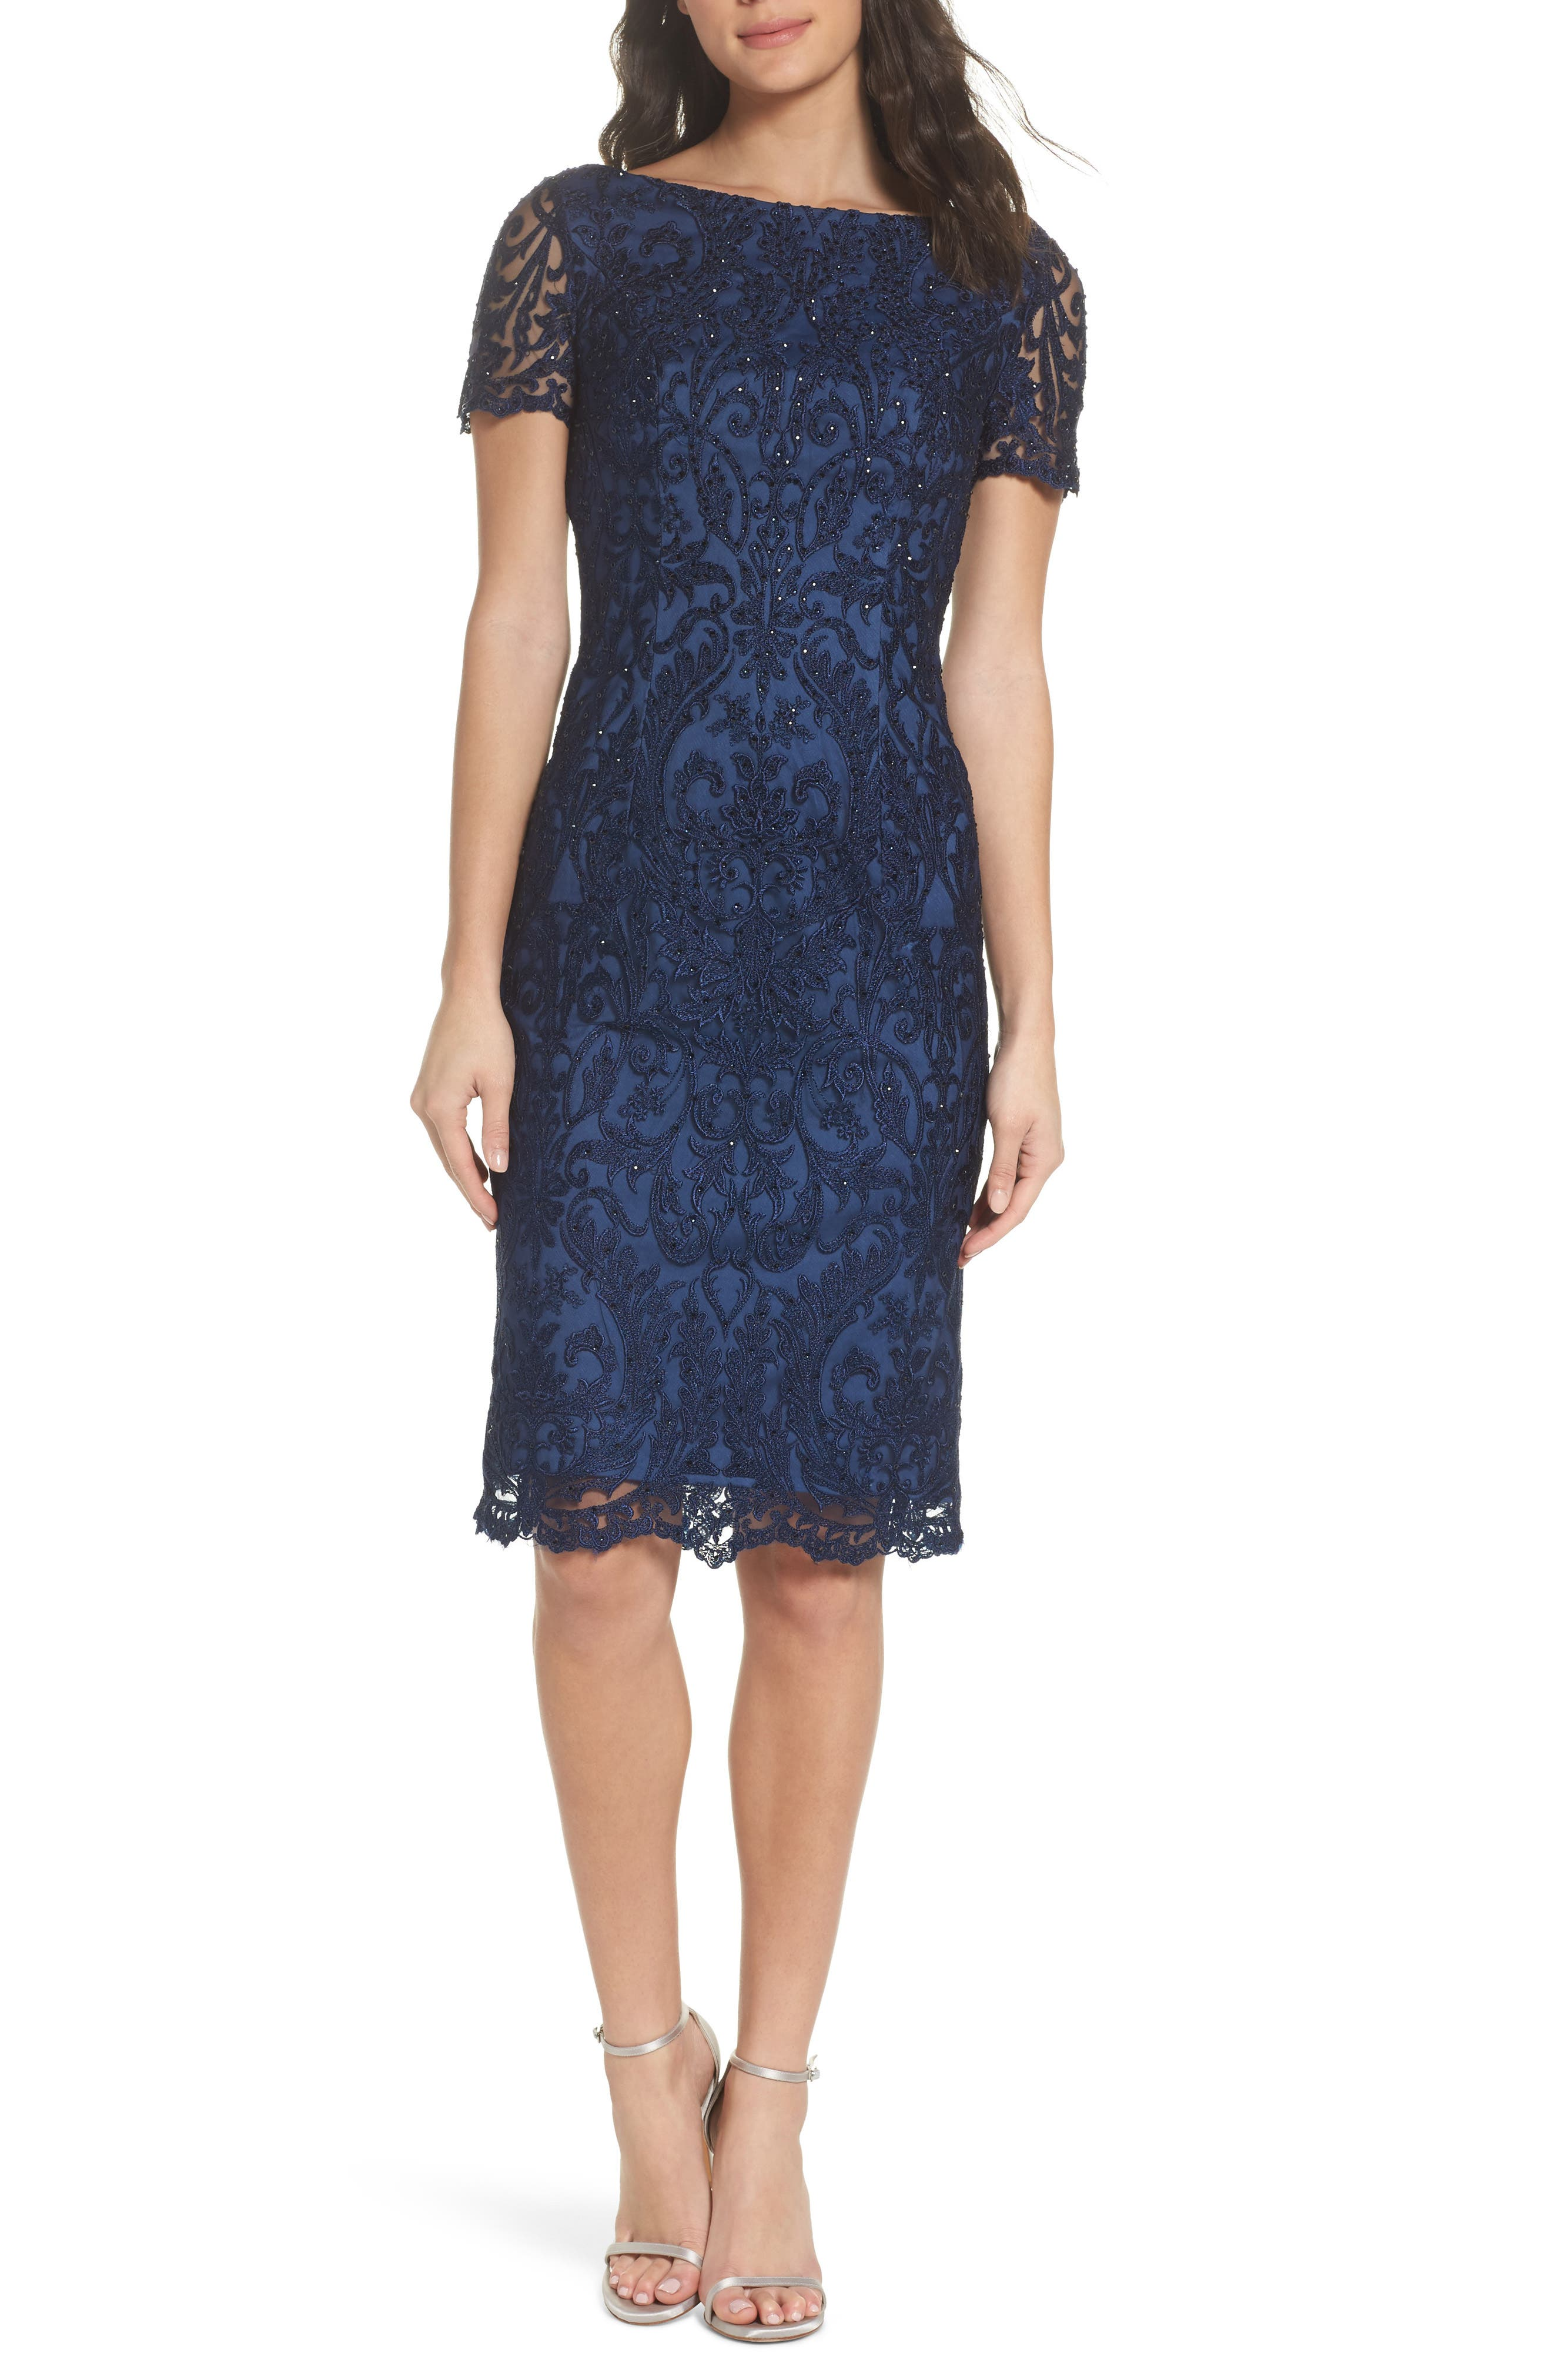 La Femme Beaded Lace Sheath Dress, Blue